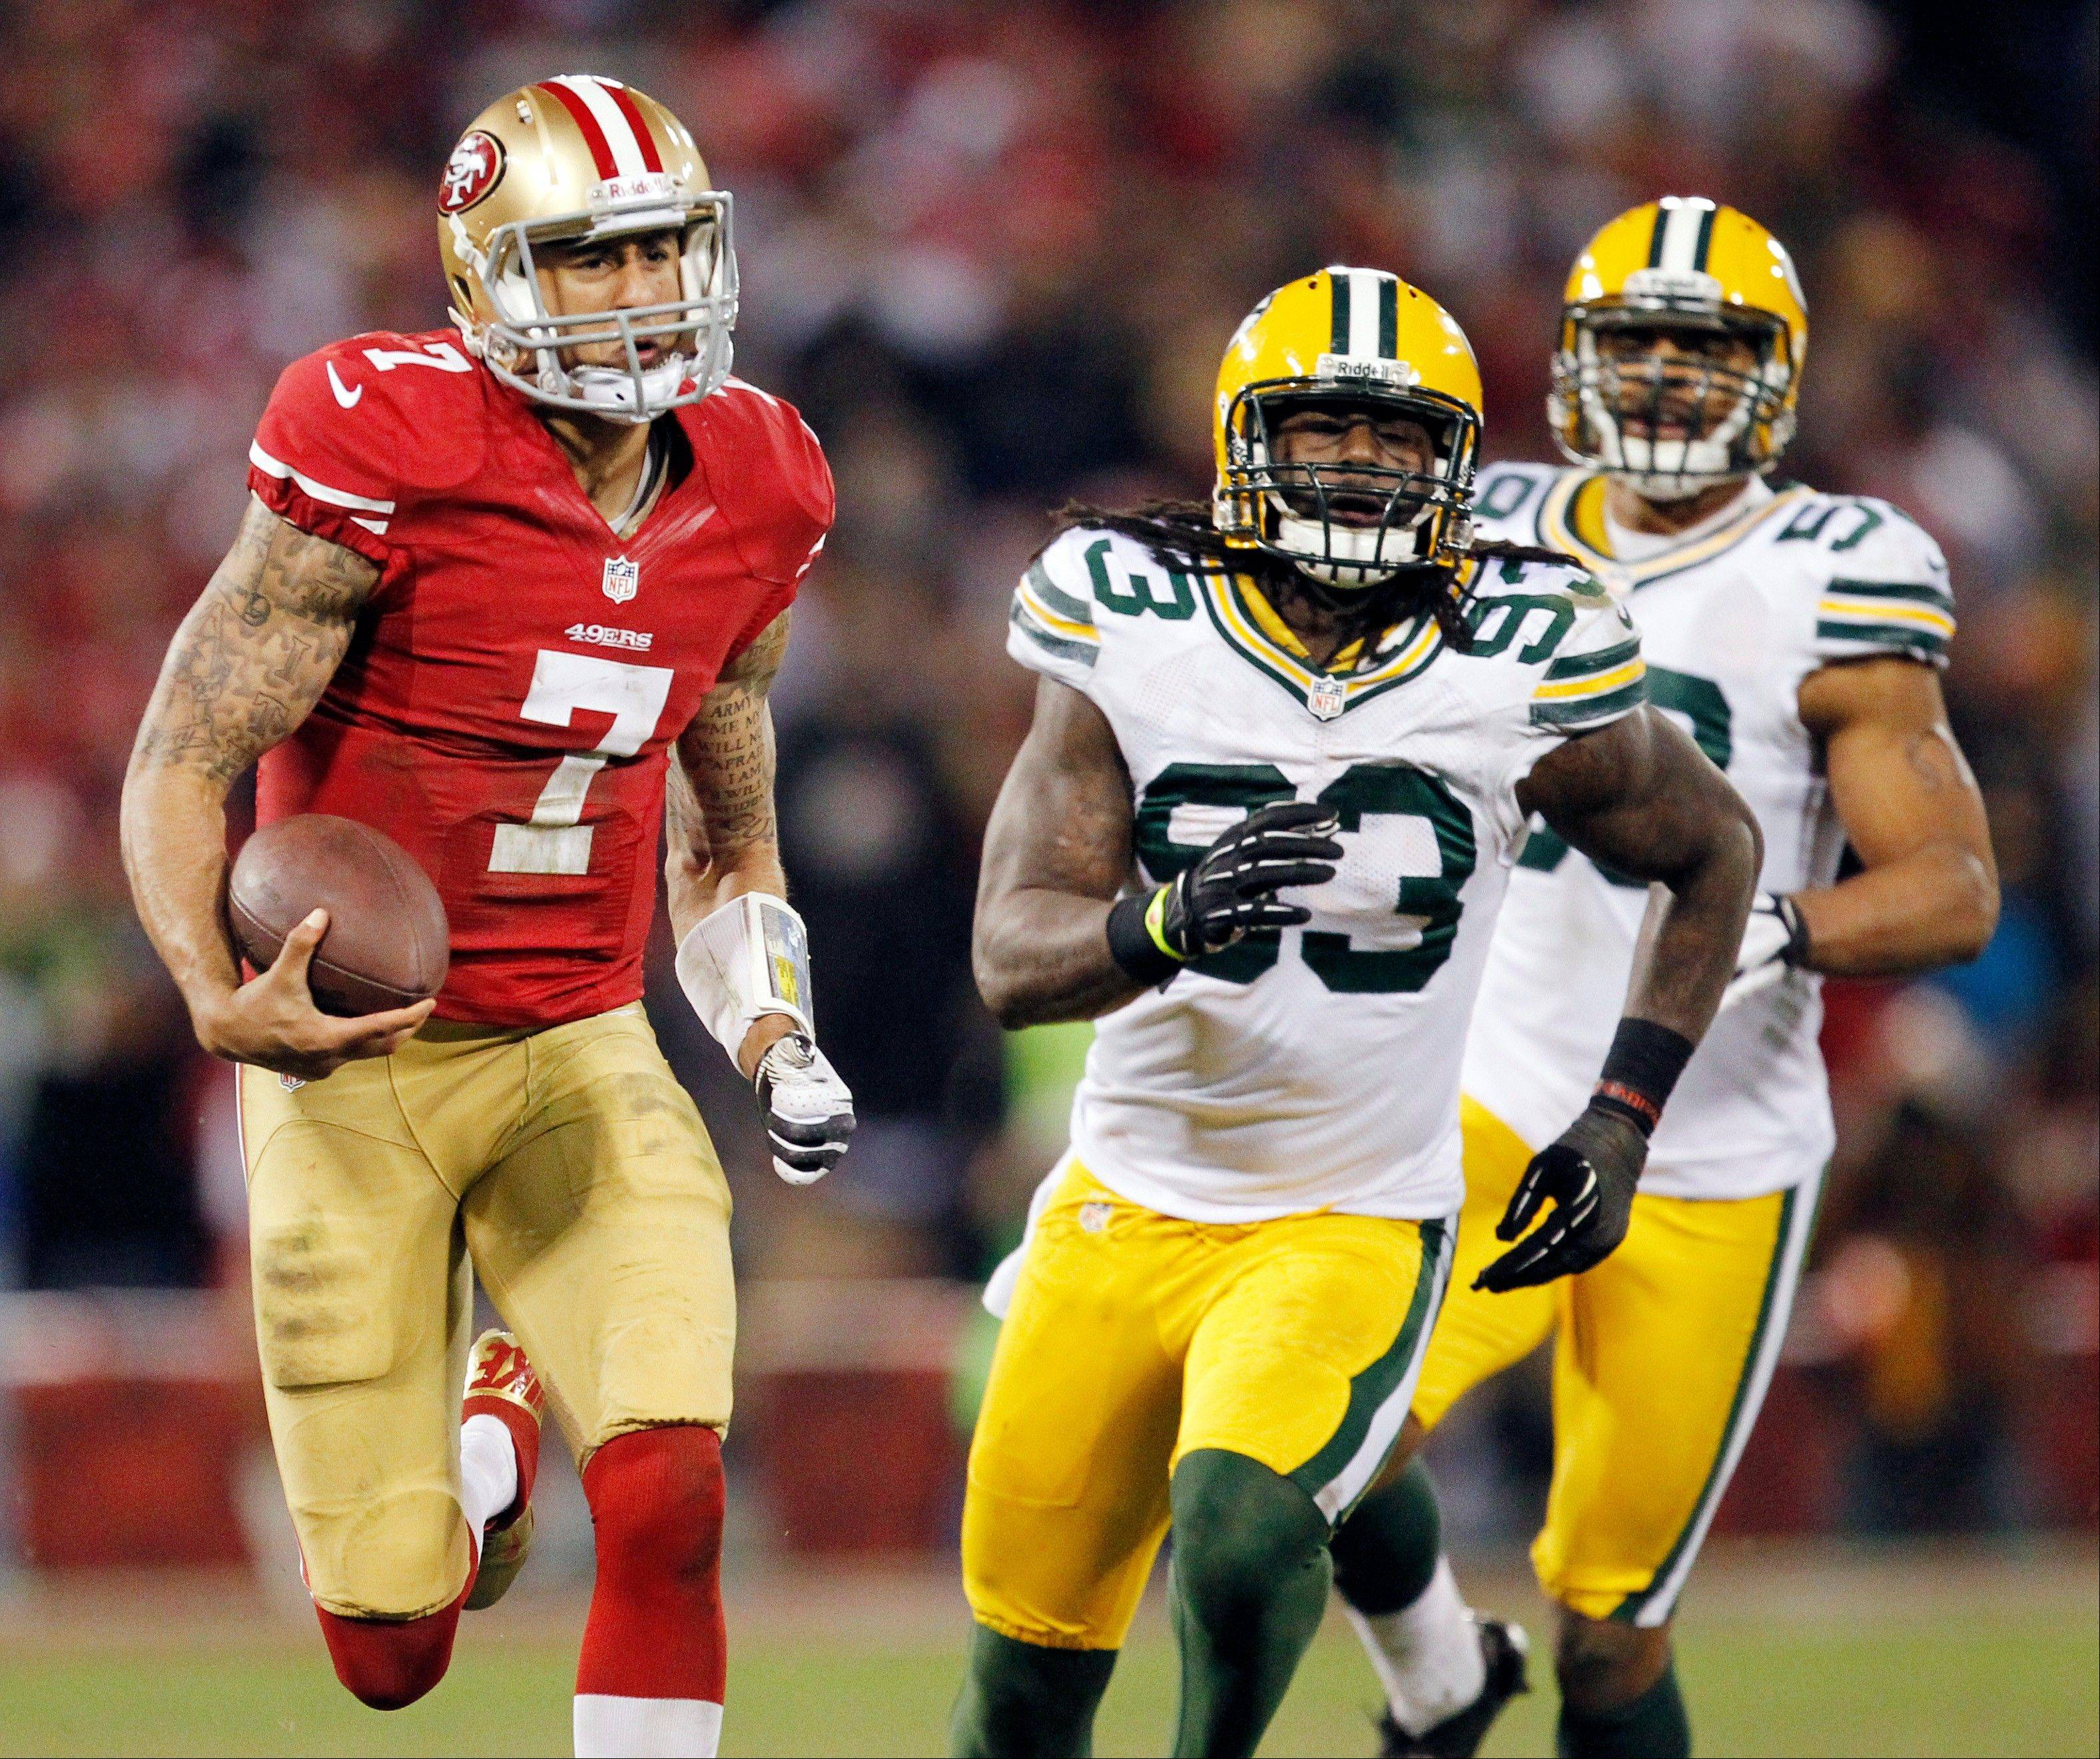 ADVANCE FOR WEEKEND EDITIONS, SEPT. 7-8 - FILE - In this Jan. 12, 2013, file photo, San Francisco 49ers quarterback Colin Kaepernick (7) runs for a 56-yard touchdown past Green Bay Packers outside linebacker Erik Walden (93) and inside linebacker Brad Jones (59) during the third quarter of an NFC divisional playoff NFL football game in San Francisco. The last time the Packers saw Kaepernick in person, he was a meteor tearing through their flimsy defense. When Green Bay journeys to San Francisco for Sunday's marquee matchup with the NFC champion 49ers, that defense better be a lot stingier, or the Packers will get smashed up again.